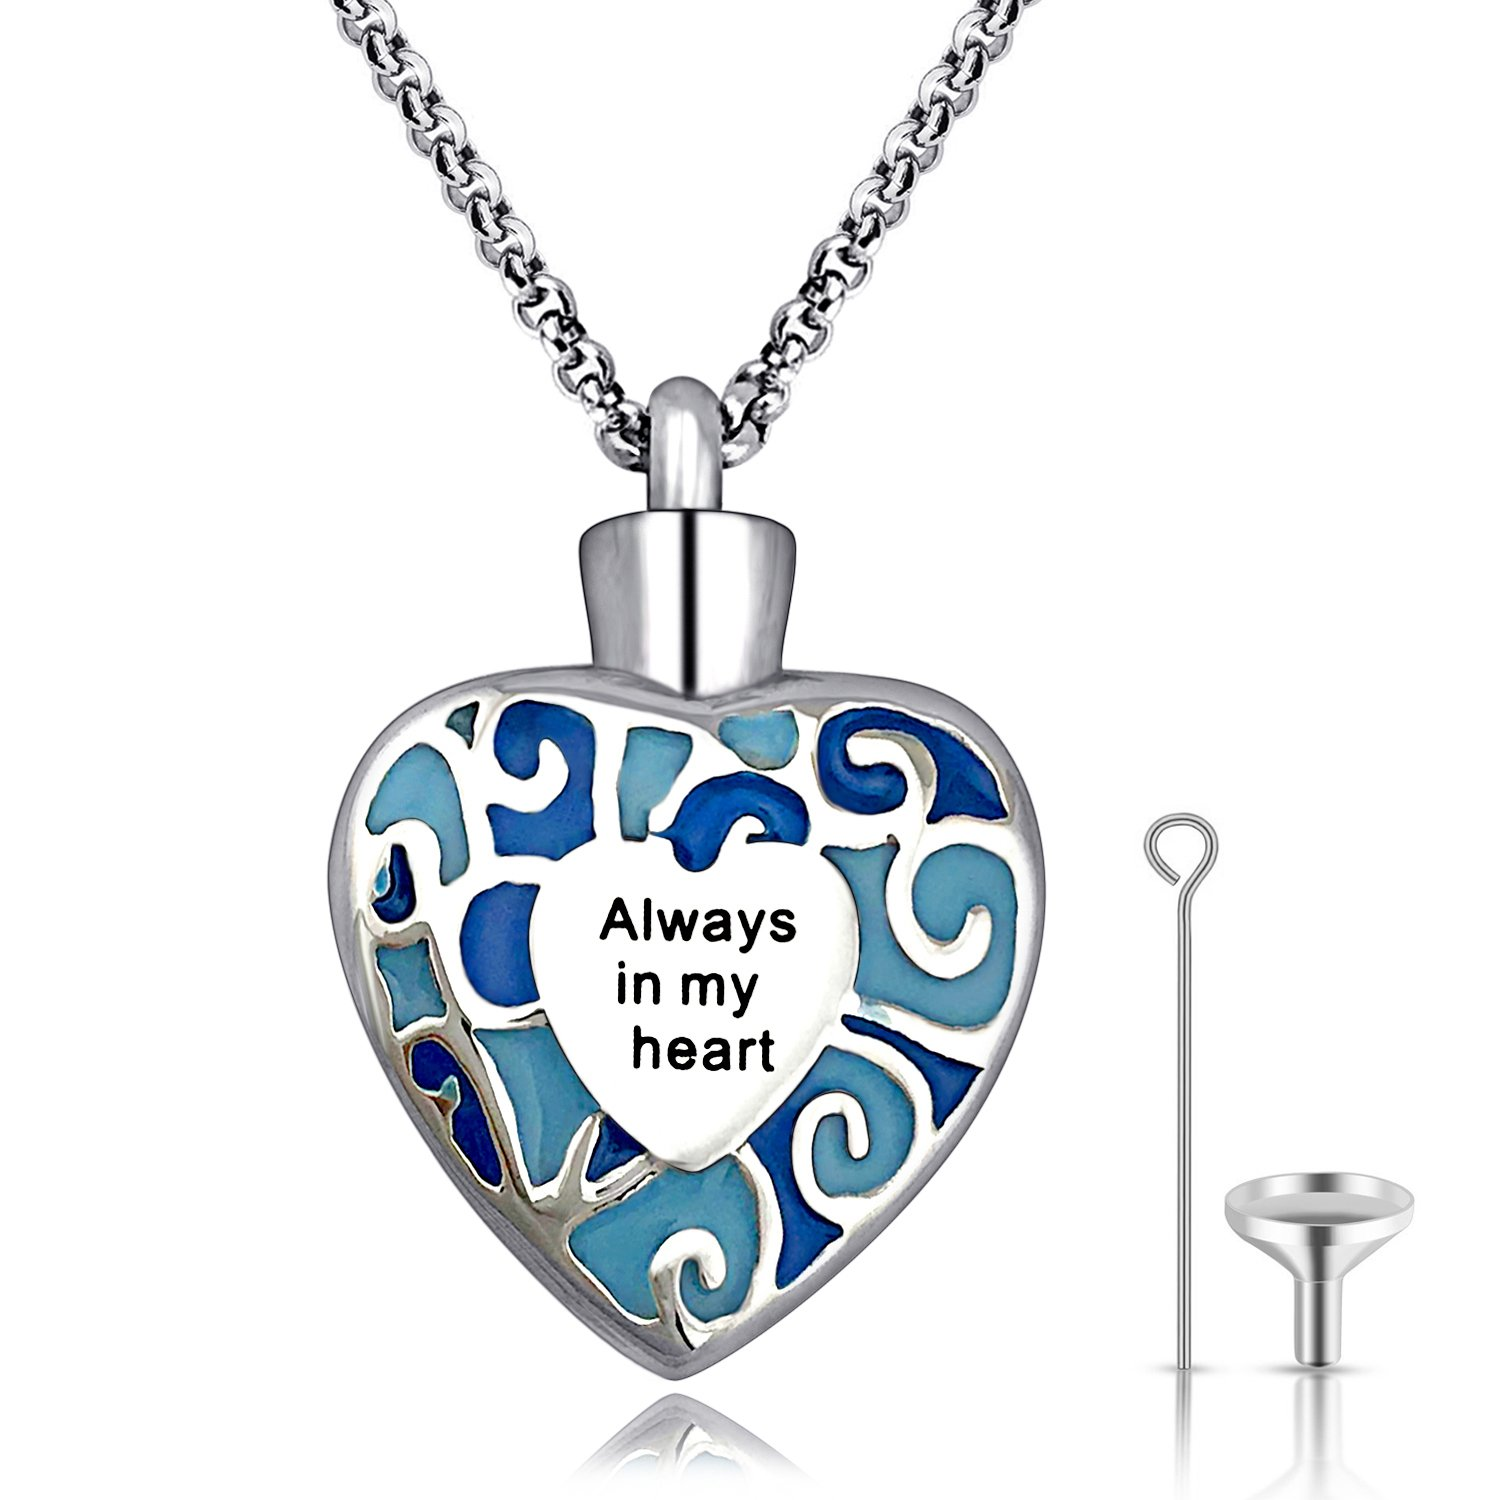 YOUFENG Urn Necklaces for Ashes Always in My Heart Cremation Jewelry Stainless Steel Ashes Pendant Necklace 24'' (Heart Urn Necklace)